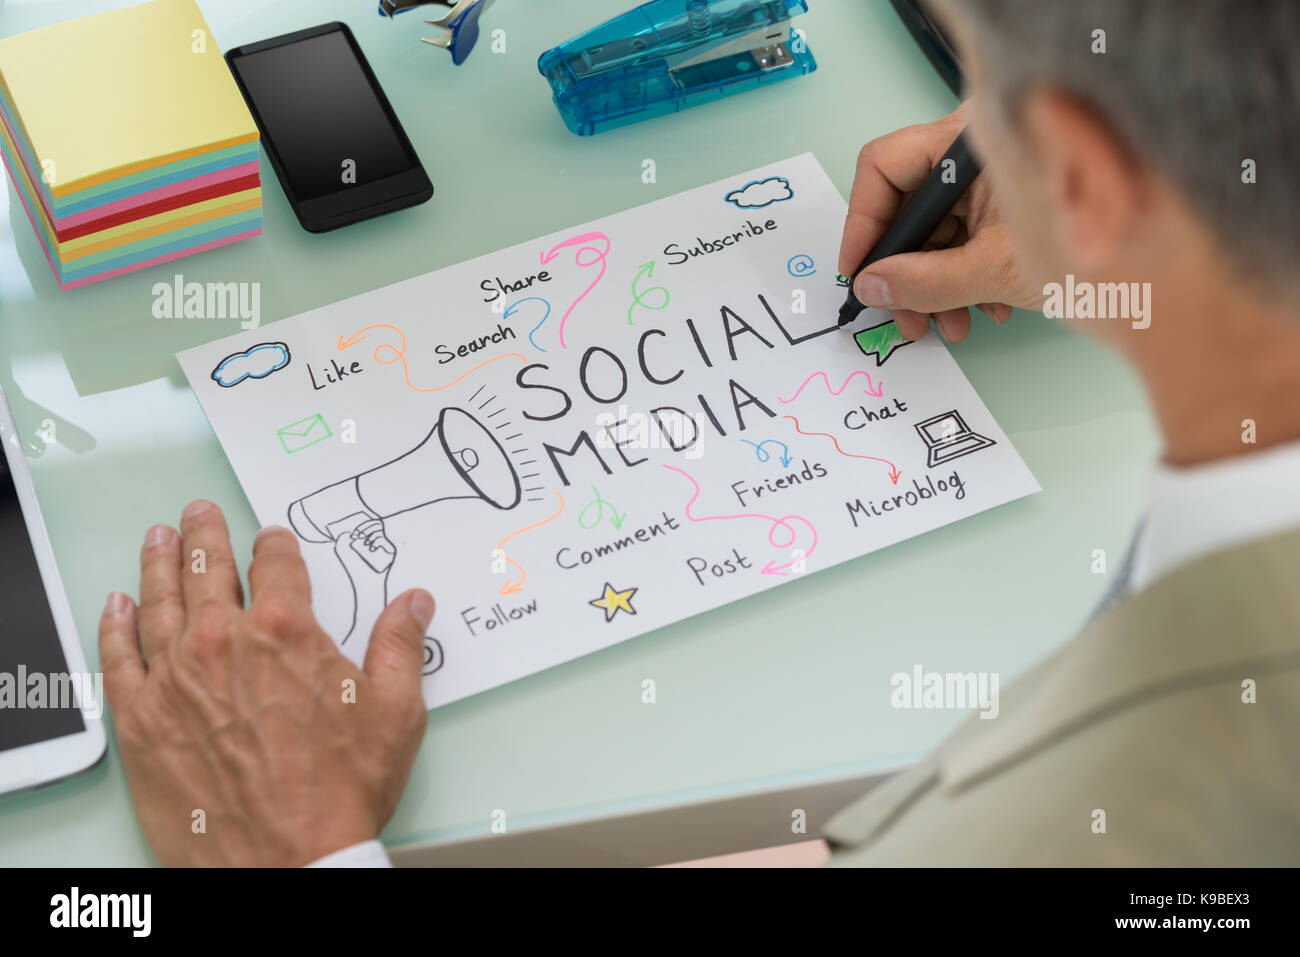 close up of businessman planning social media strategy on paper Strategic Planning Process Diagram